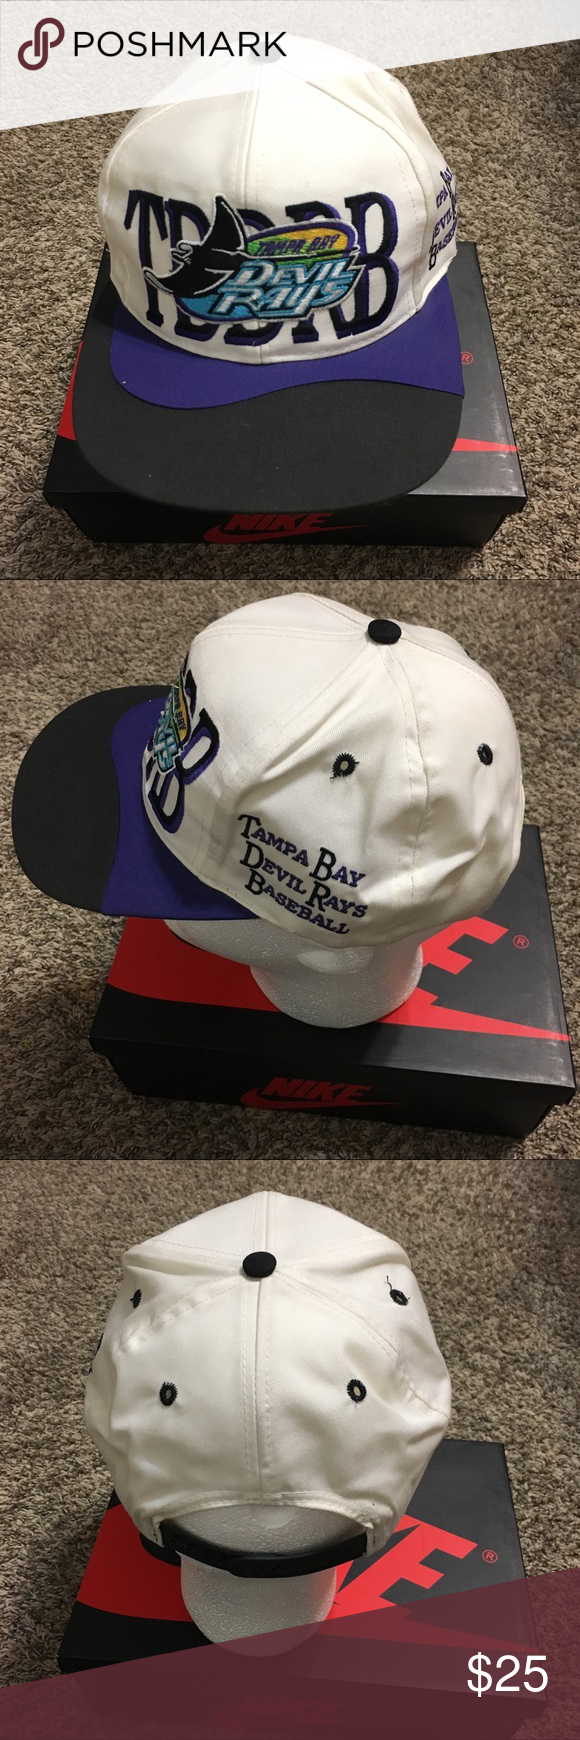 95ea1e526ee Vintage MLB Tampa Bay Devil Rays Snapback Vintage 90s MLB Baseball Tampa  Bay Devil Rays Purple Black Snap Back Hat Good condition just some light  wear MLB ...